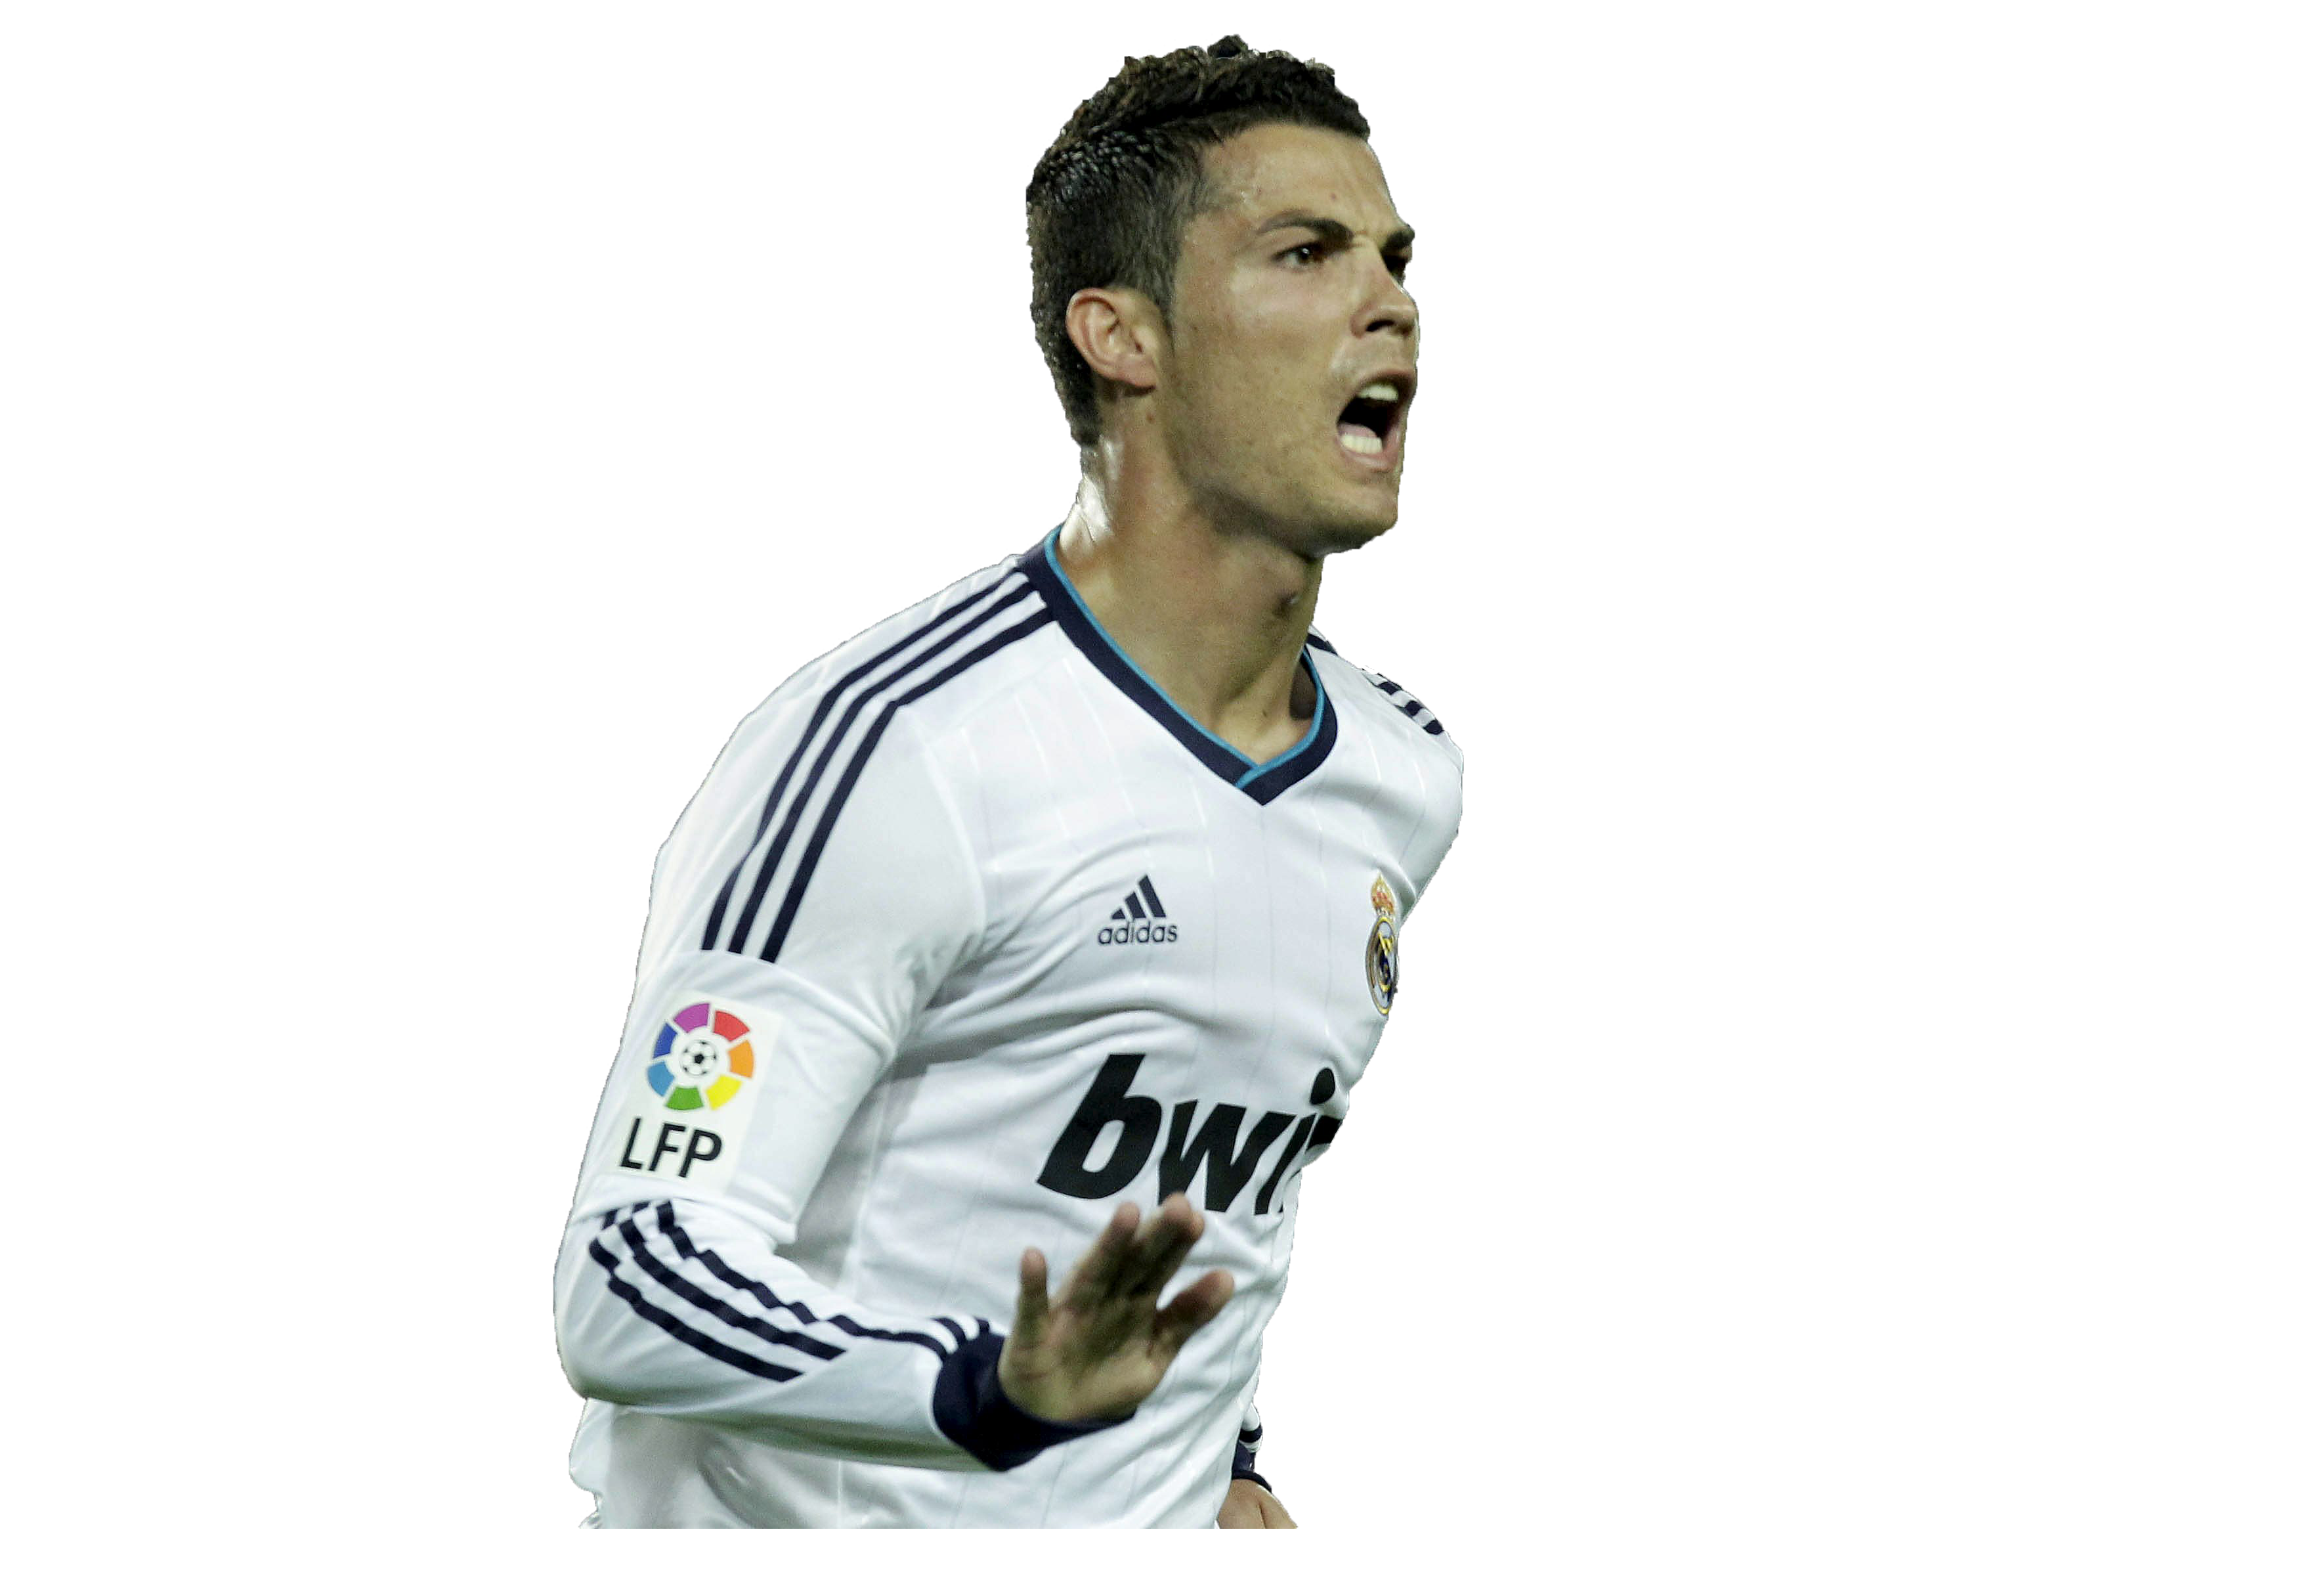 Cristiano Ronaldo Football Png Transparent Background Free Download 45087 Freeiconspng